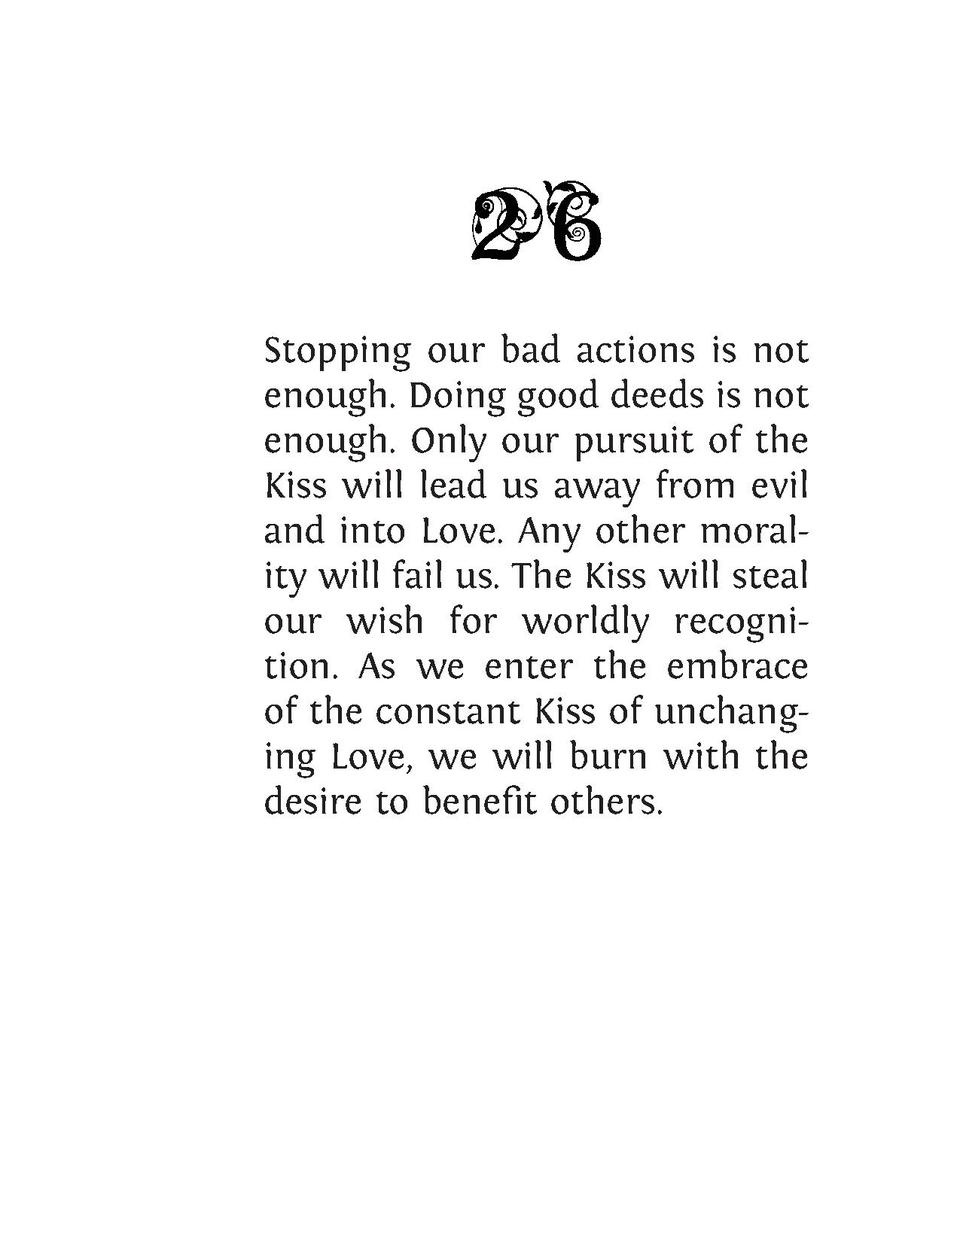 Stopping our bad actions is not enough. Doing good deeds is not enough. Only our pursuit of the Kiss will lead us away fro...